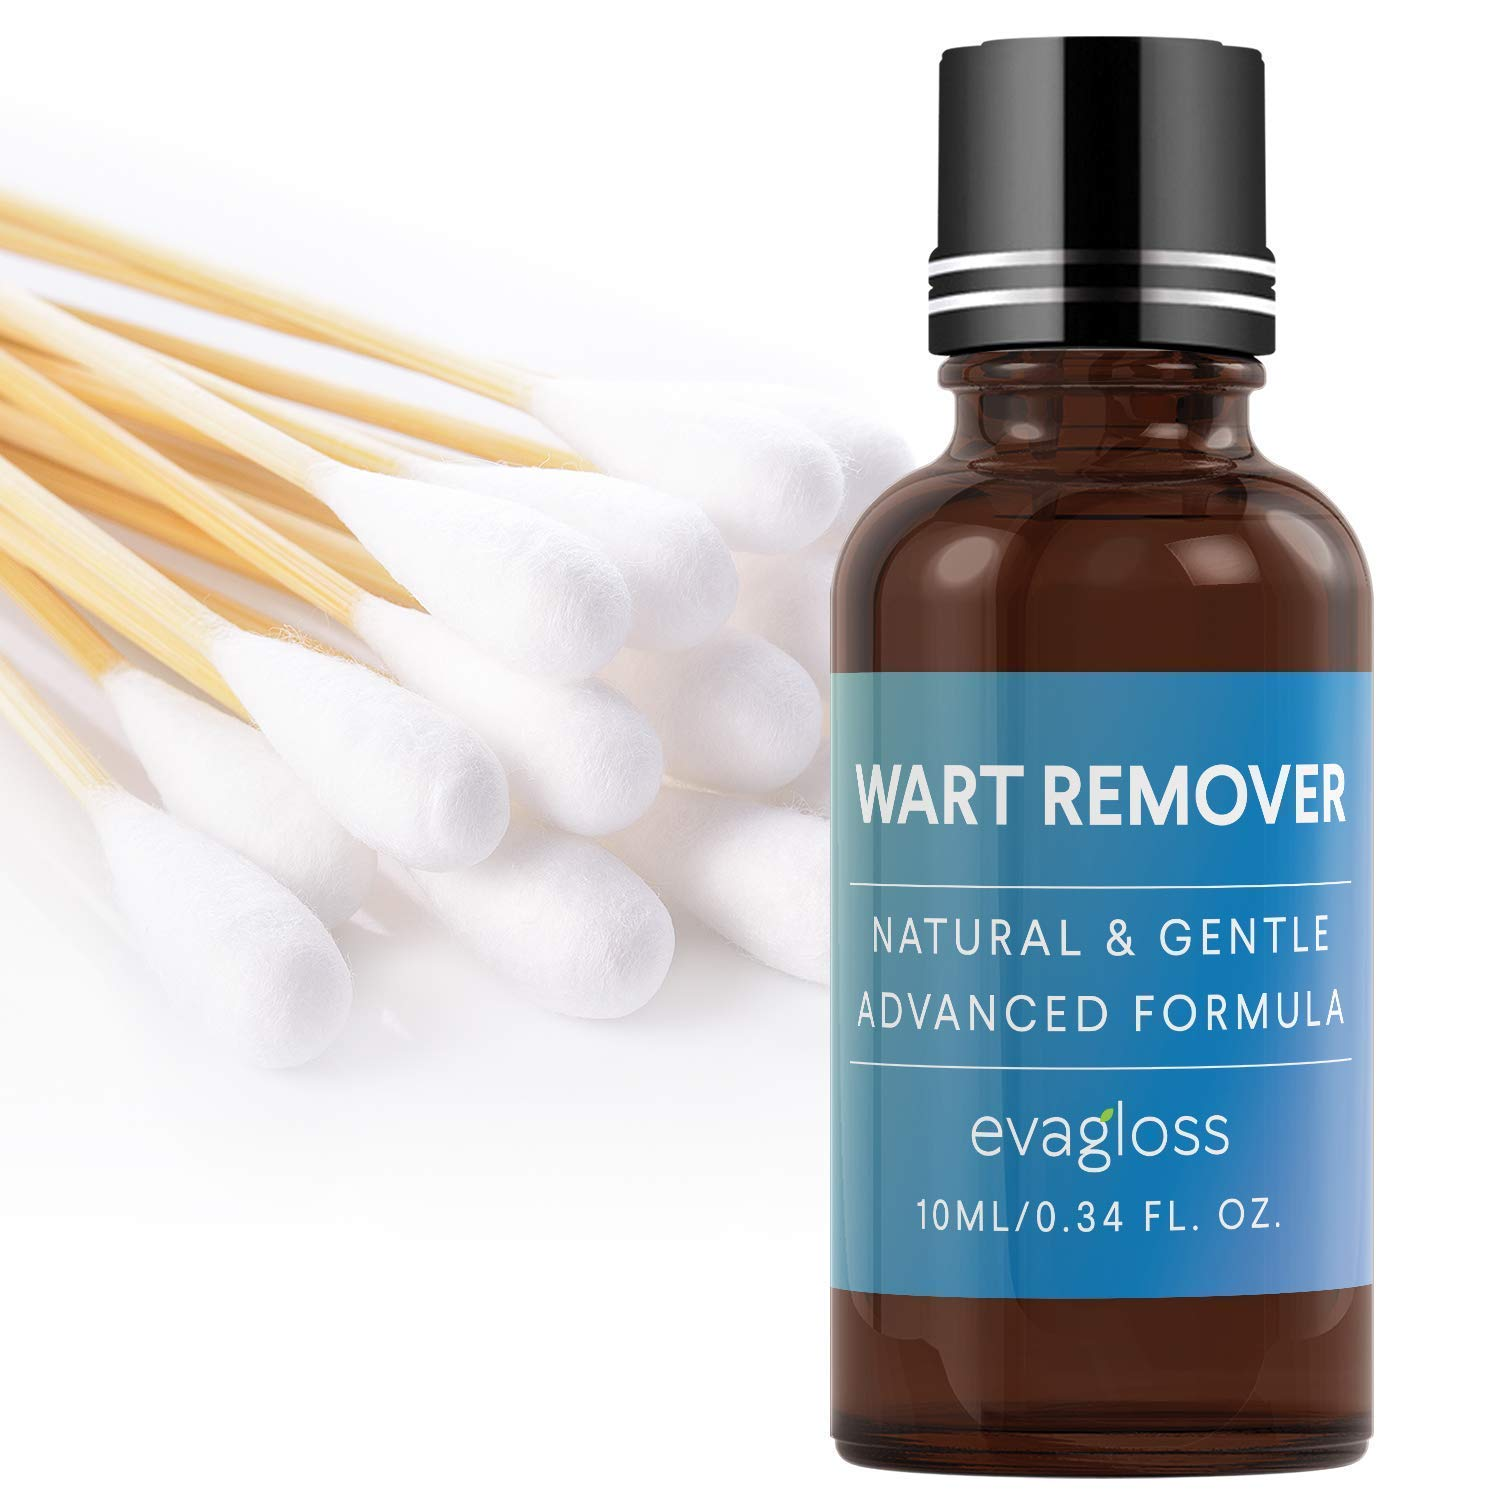 Natural Wart Remover Maximum Strength Painlessly Removes Plantar Common Genital Warts Infections